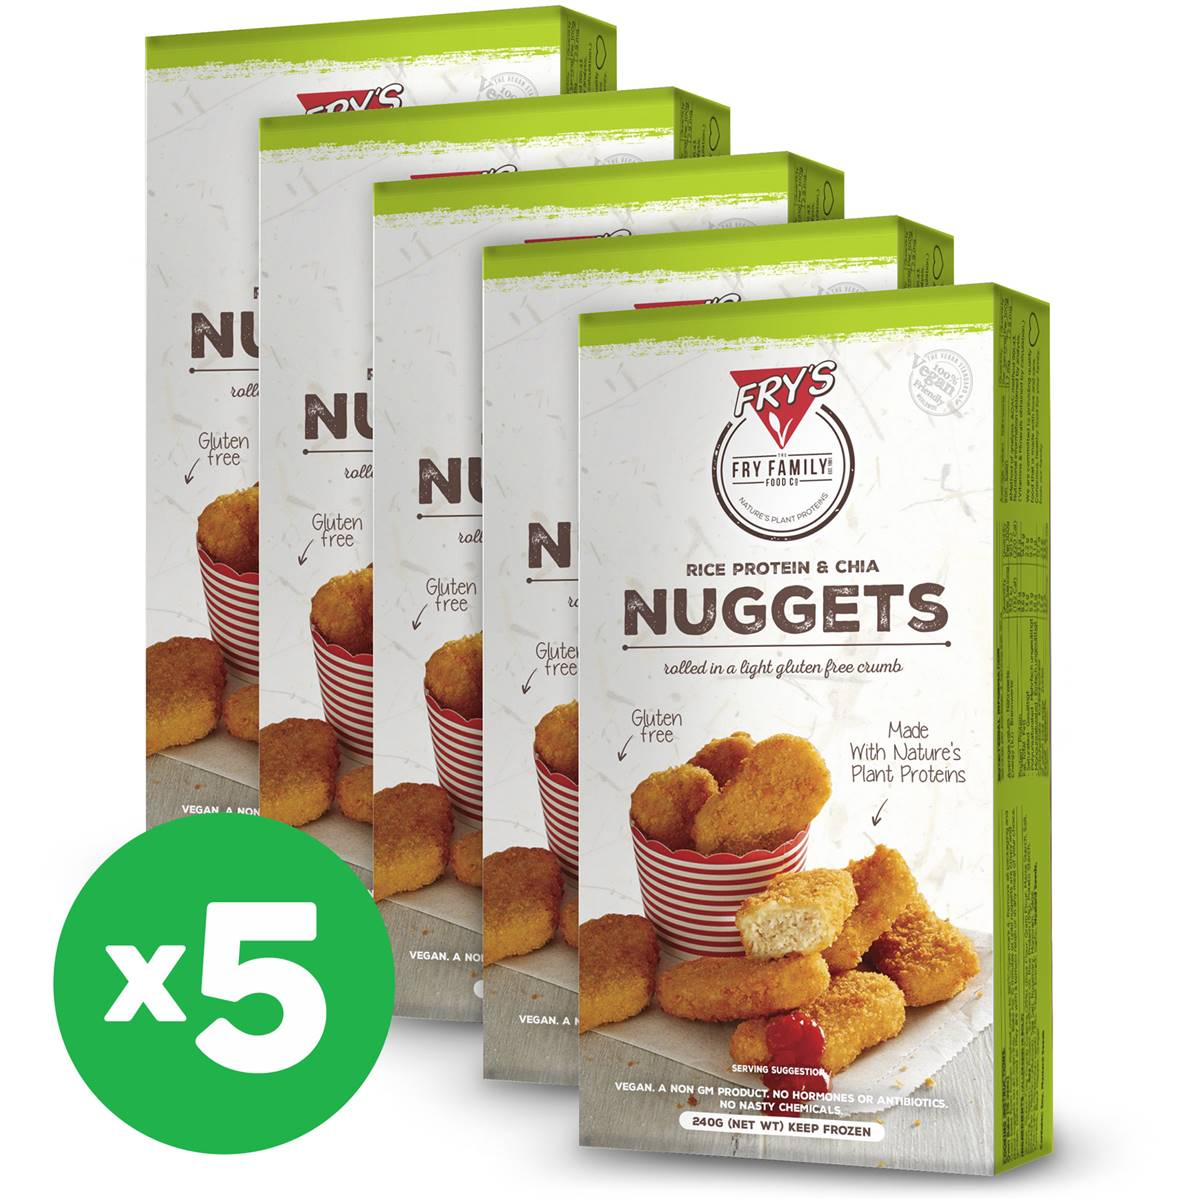 Fry's 'meat Free' Nuggets With Rice Protein & Chia 240g X5